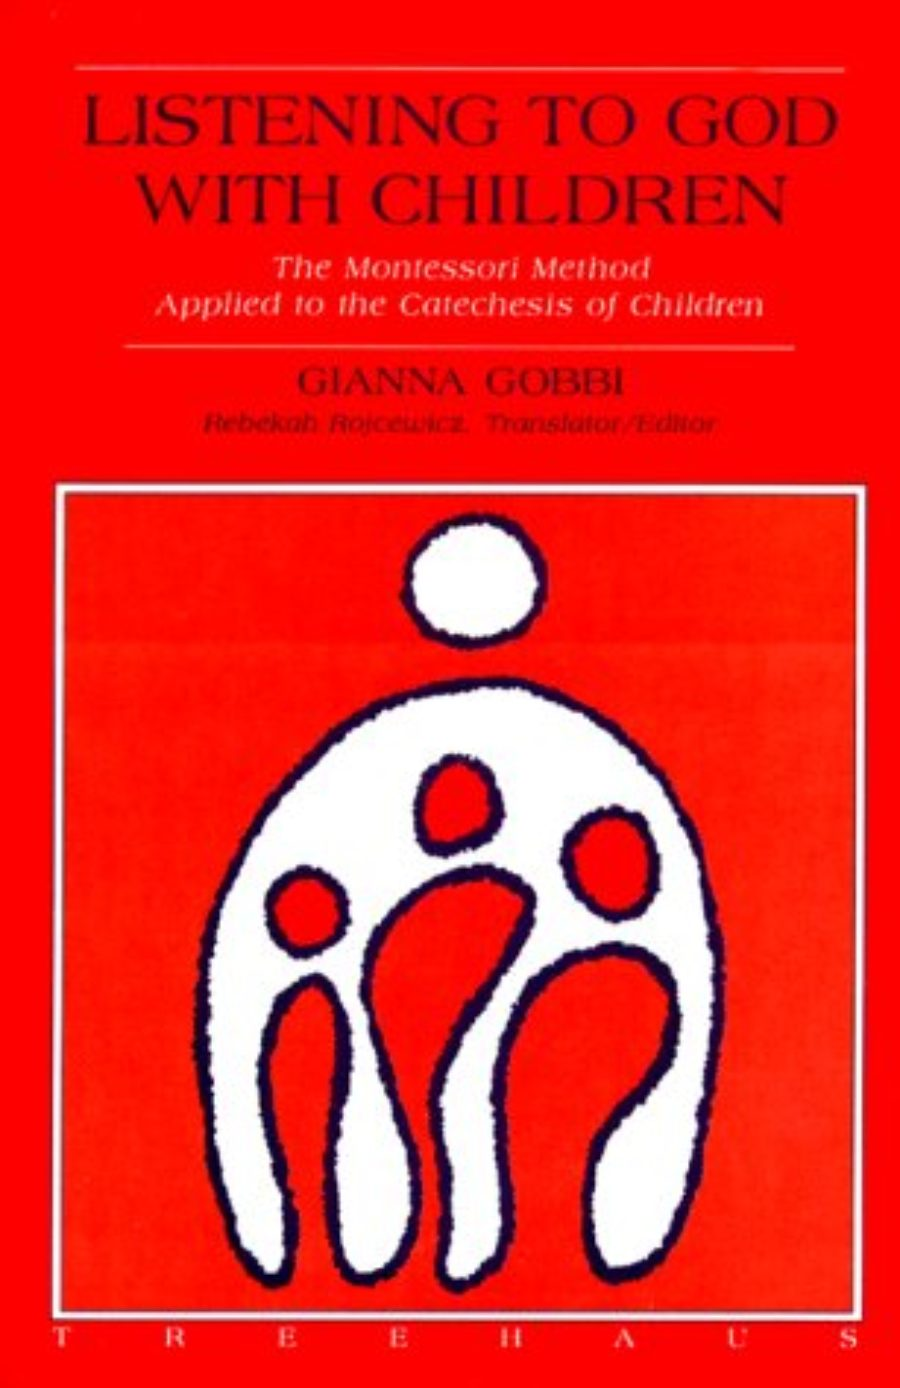 Cover of Listening to God With Children: The Montessori Method Applied to the Catechesis of Children